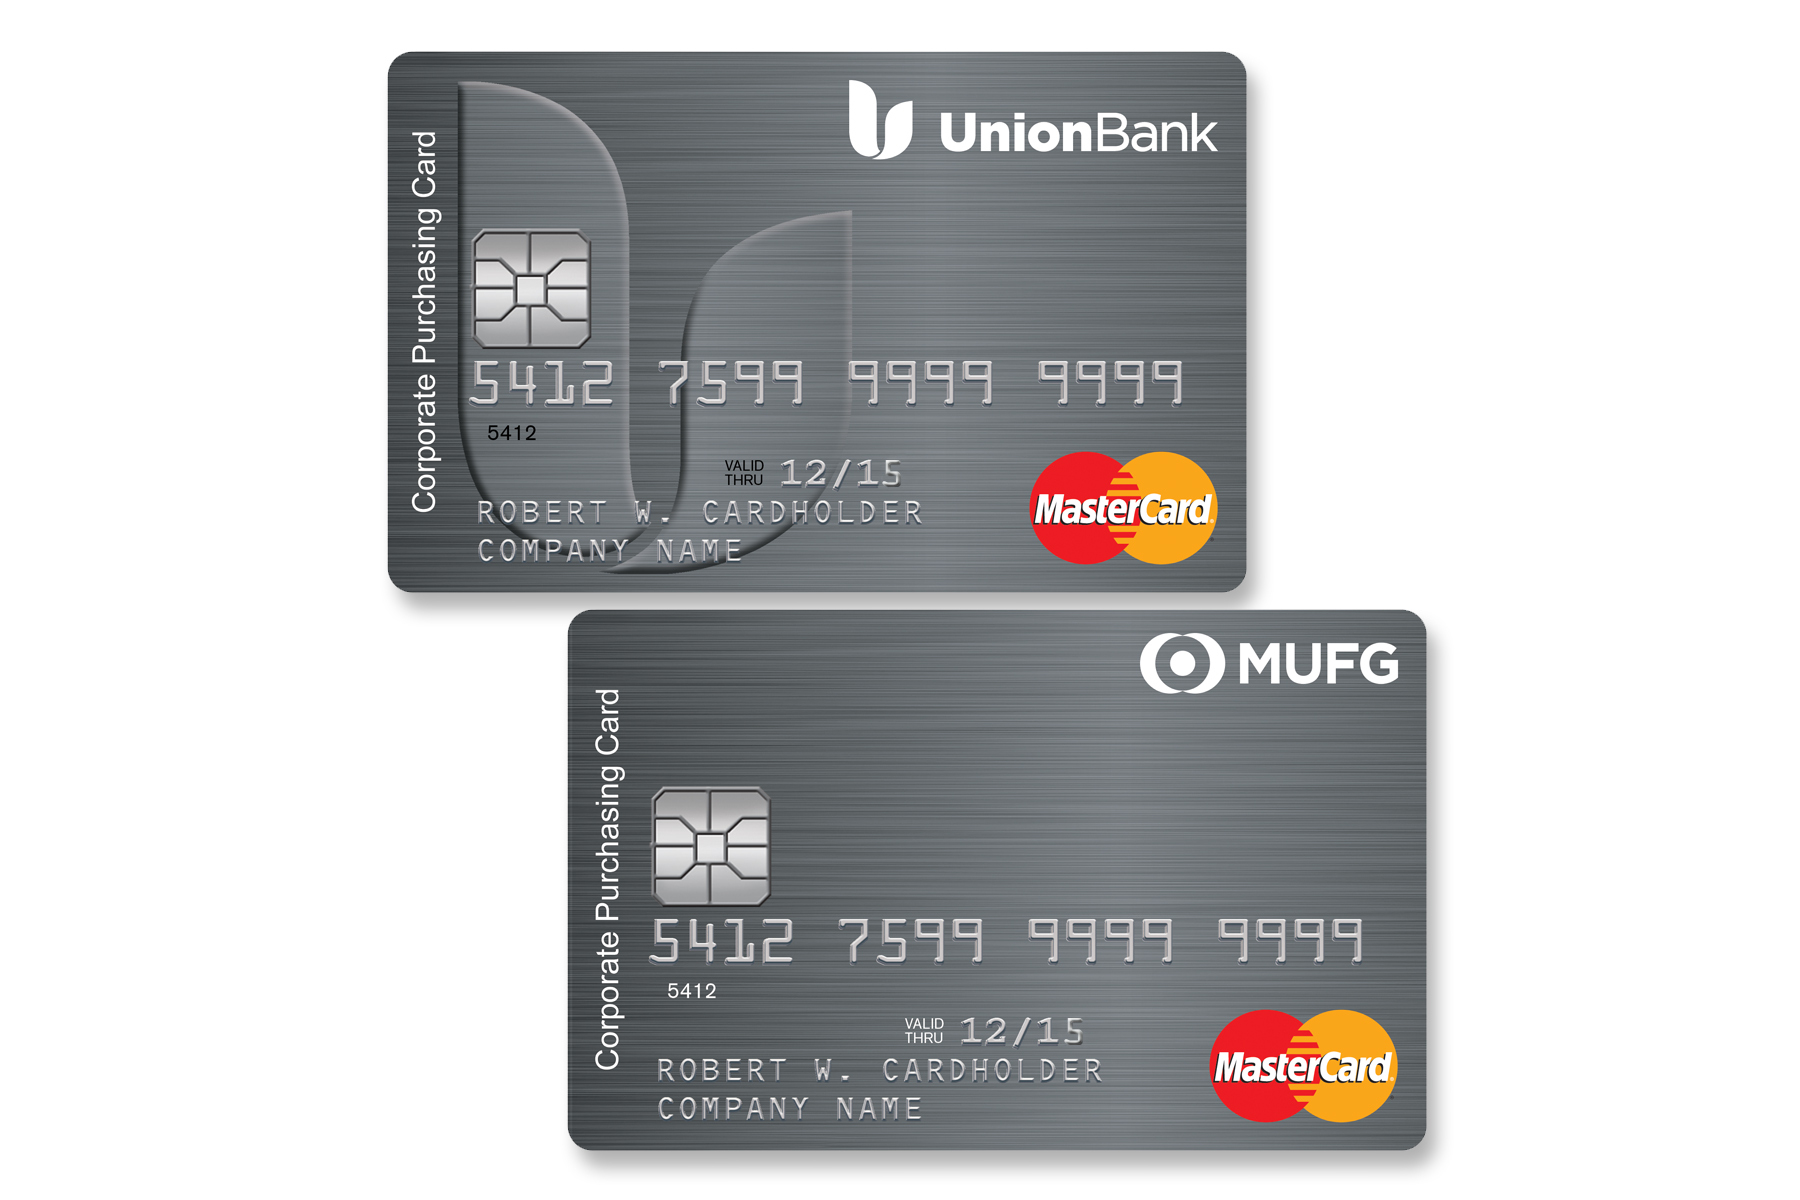 mufg union bank launches new mercial card program for corporate